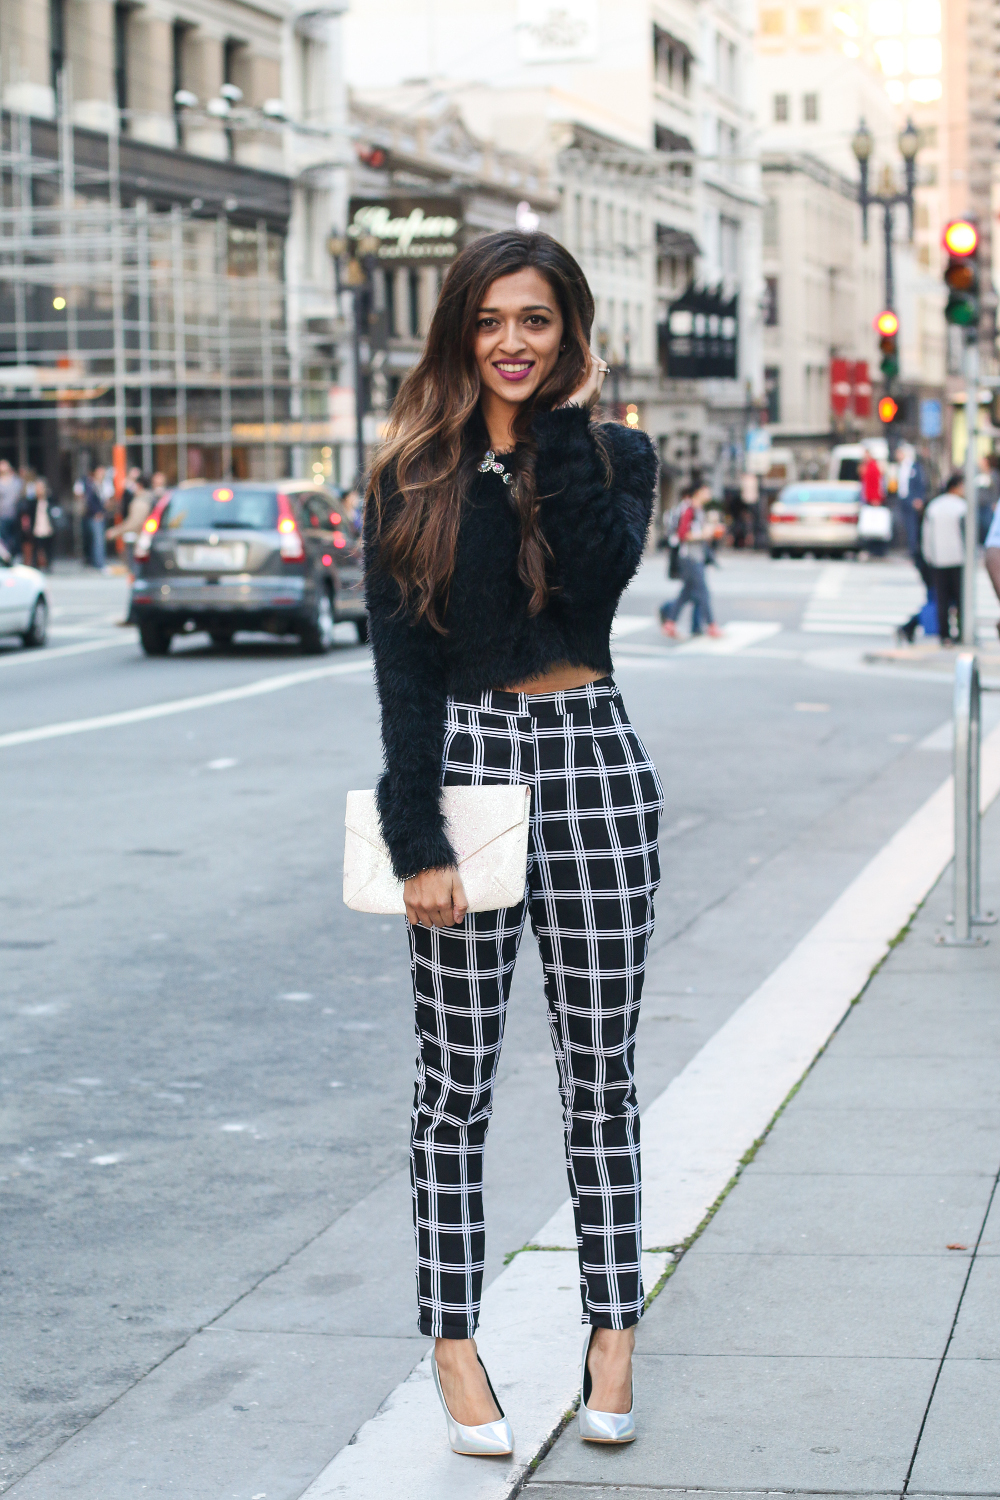 jyotsna-cuppajyo-fashion-blogger-streetstyle-photography-ryan-chua-5665.jpg